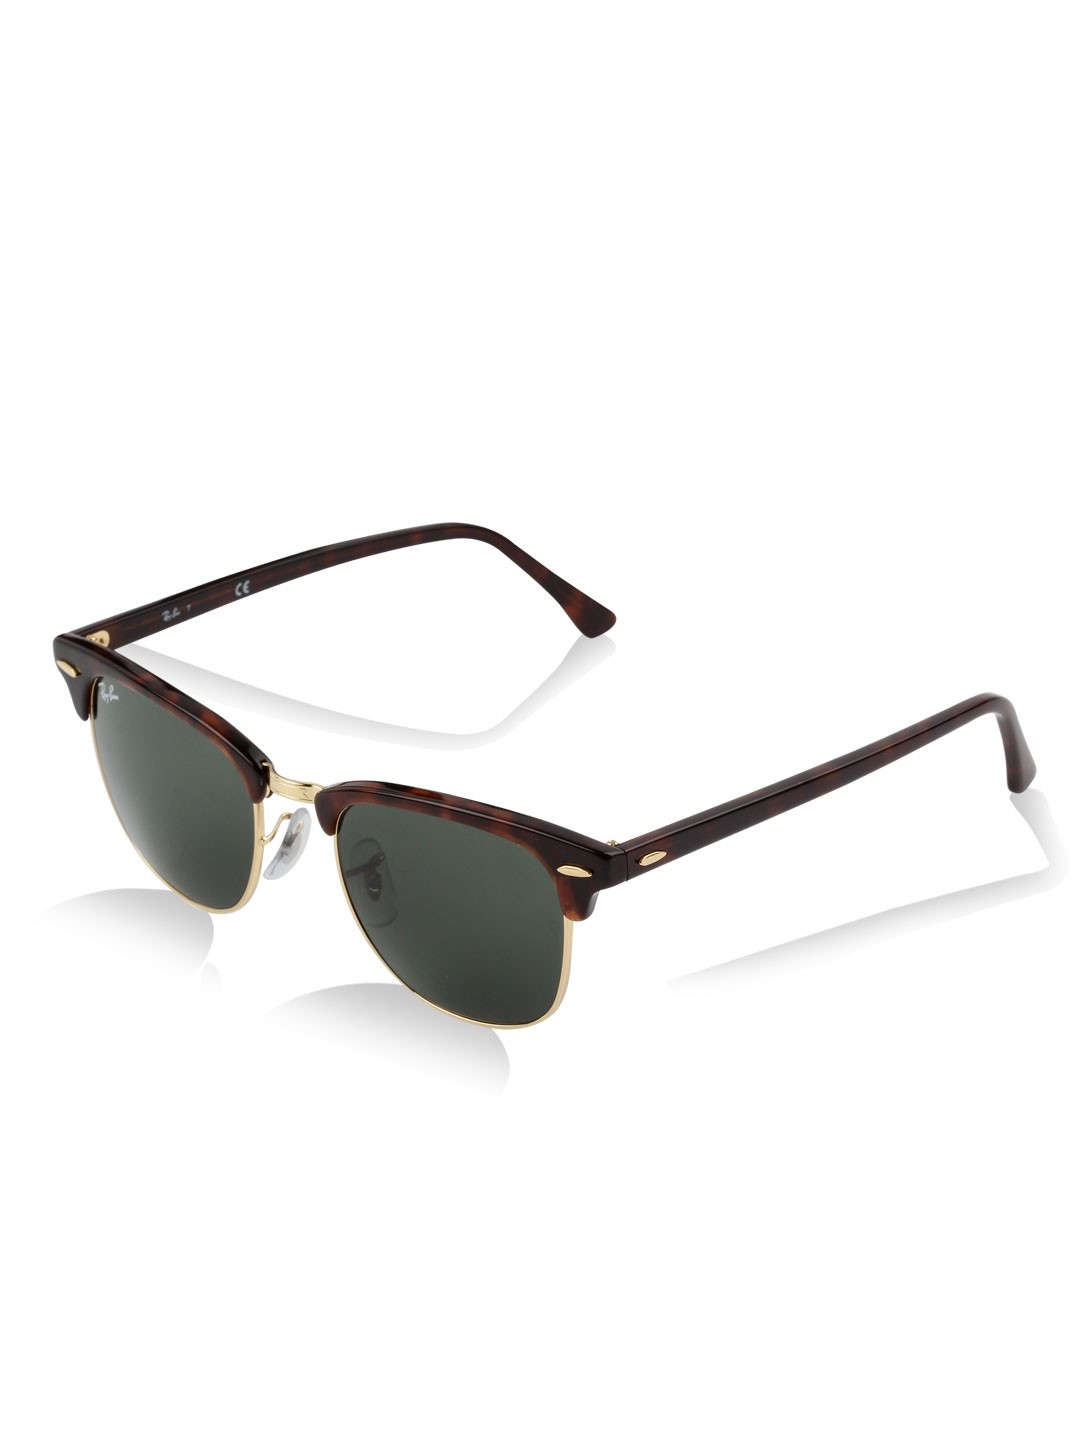 62d29c4ae3 Ray Ban Clubmaster Spectacles India « Heritage Malta